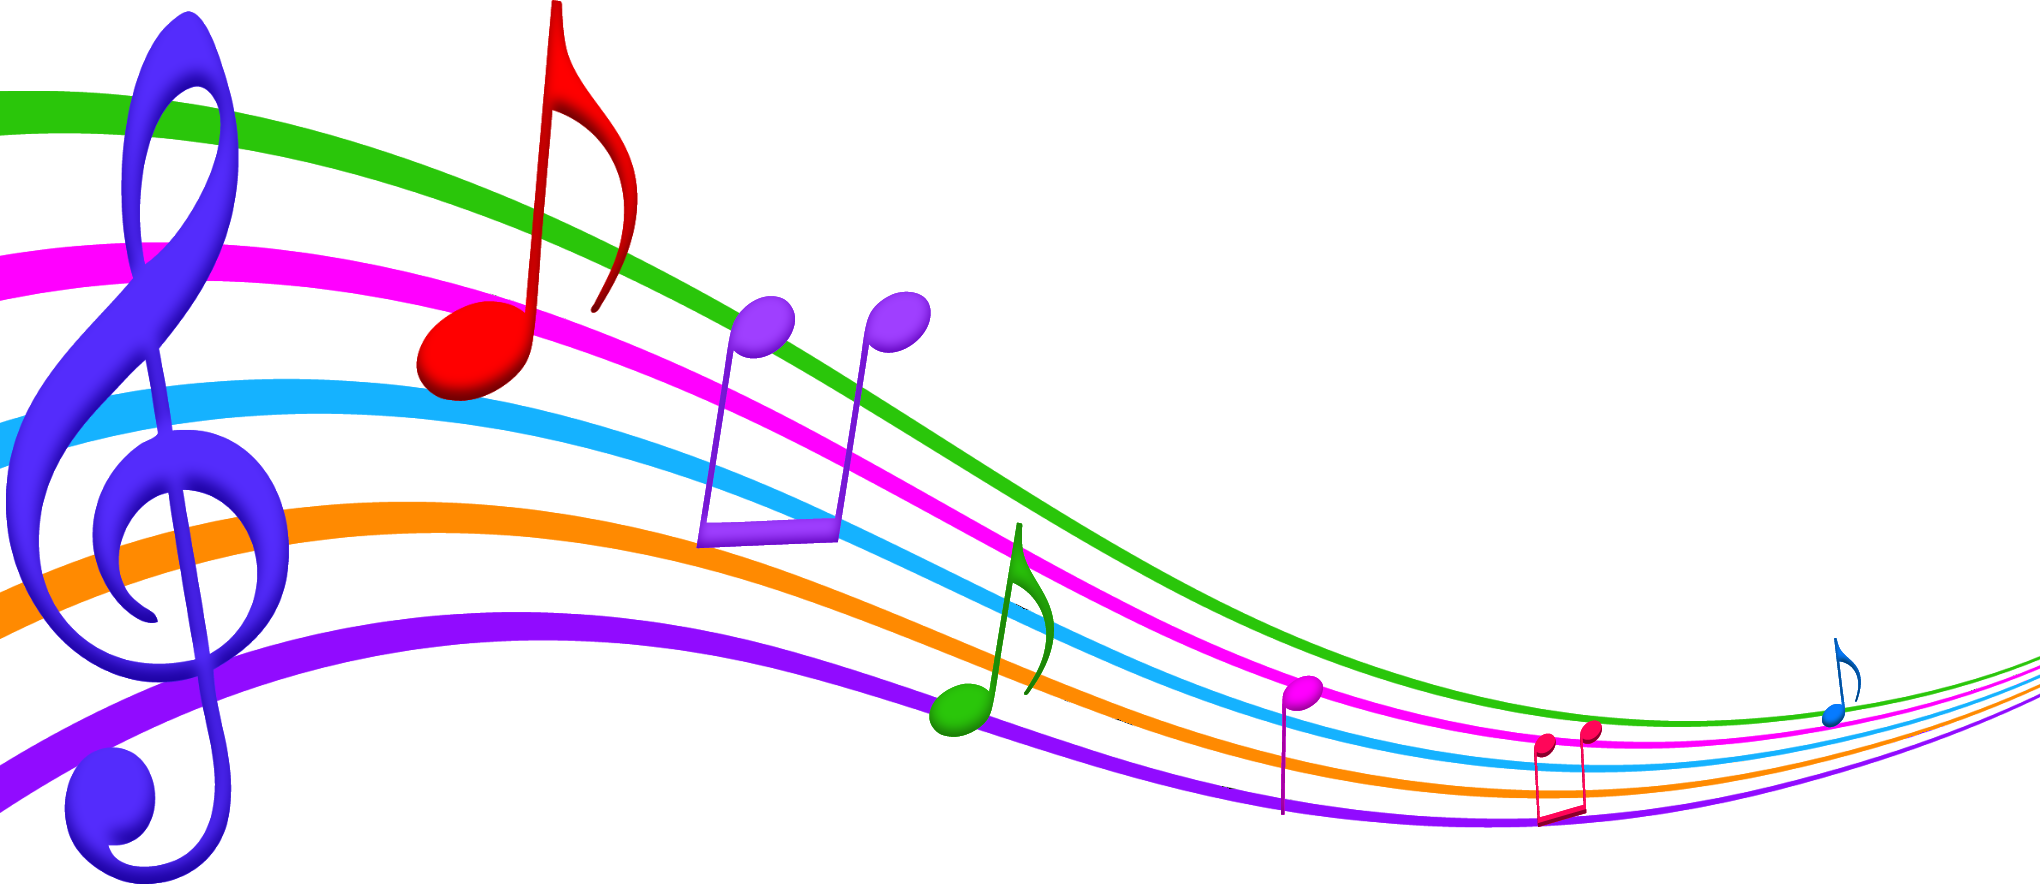 free clipart music notes at getdrawings com free for personal use rh getdrawings com free music notes clip art borders free music note clipart images